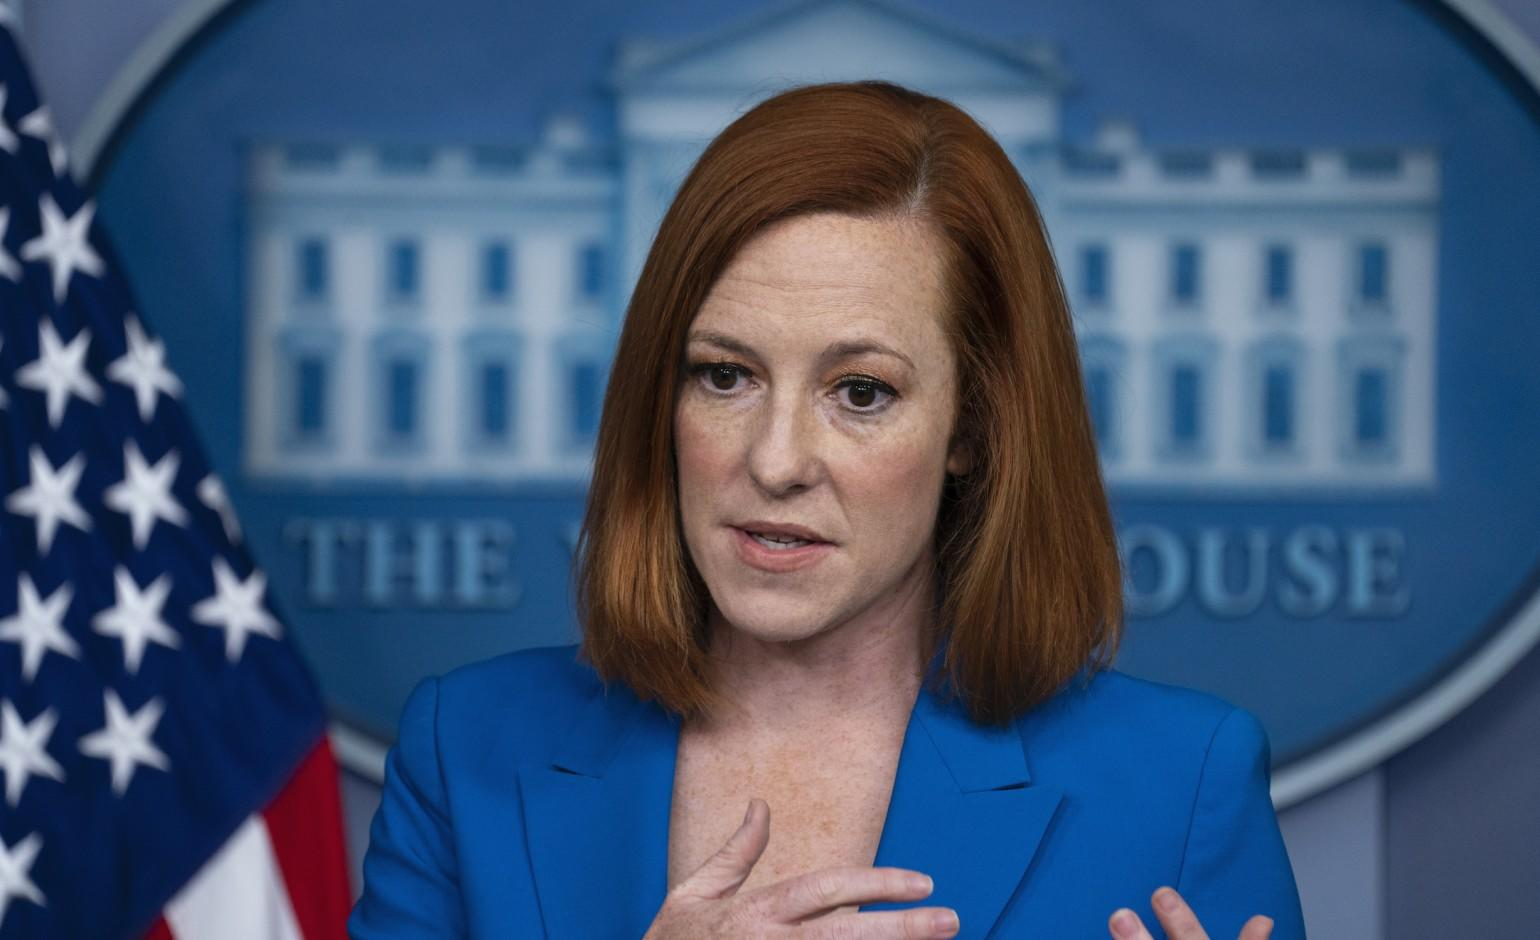 Psaki stands by claims that Republicans are responsible for defunding the police